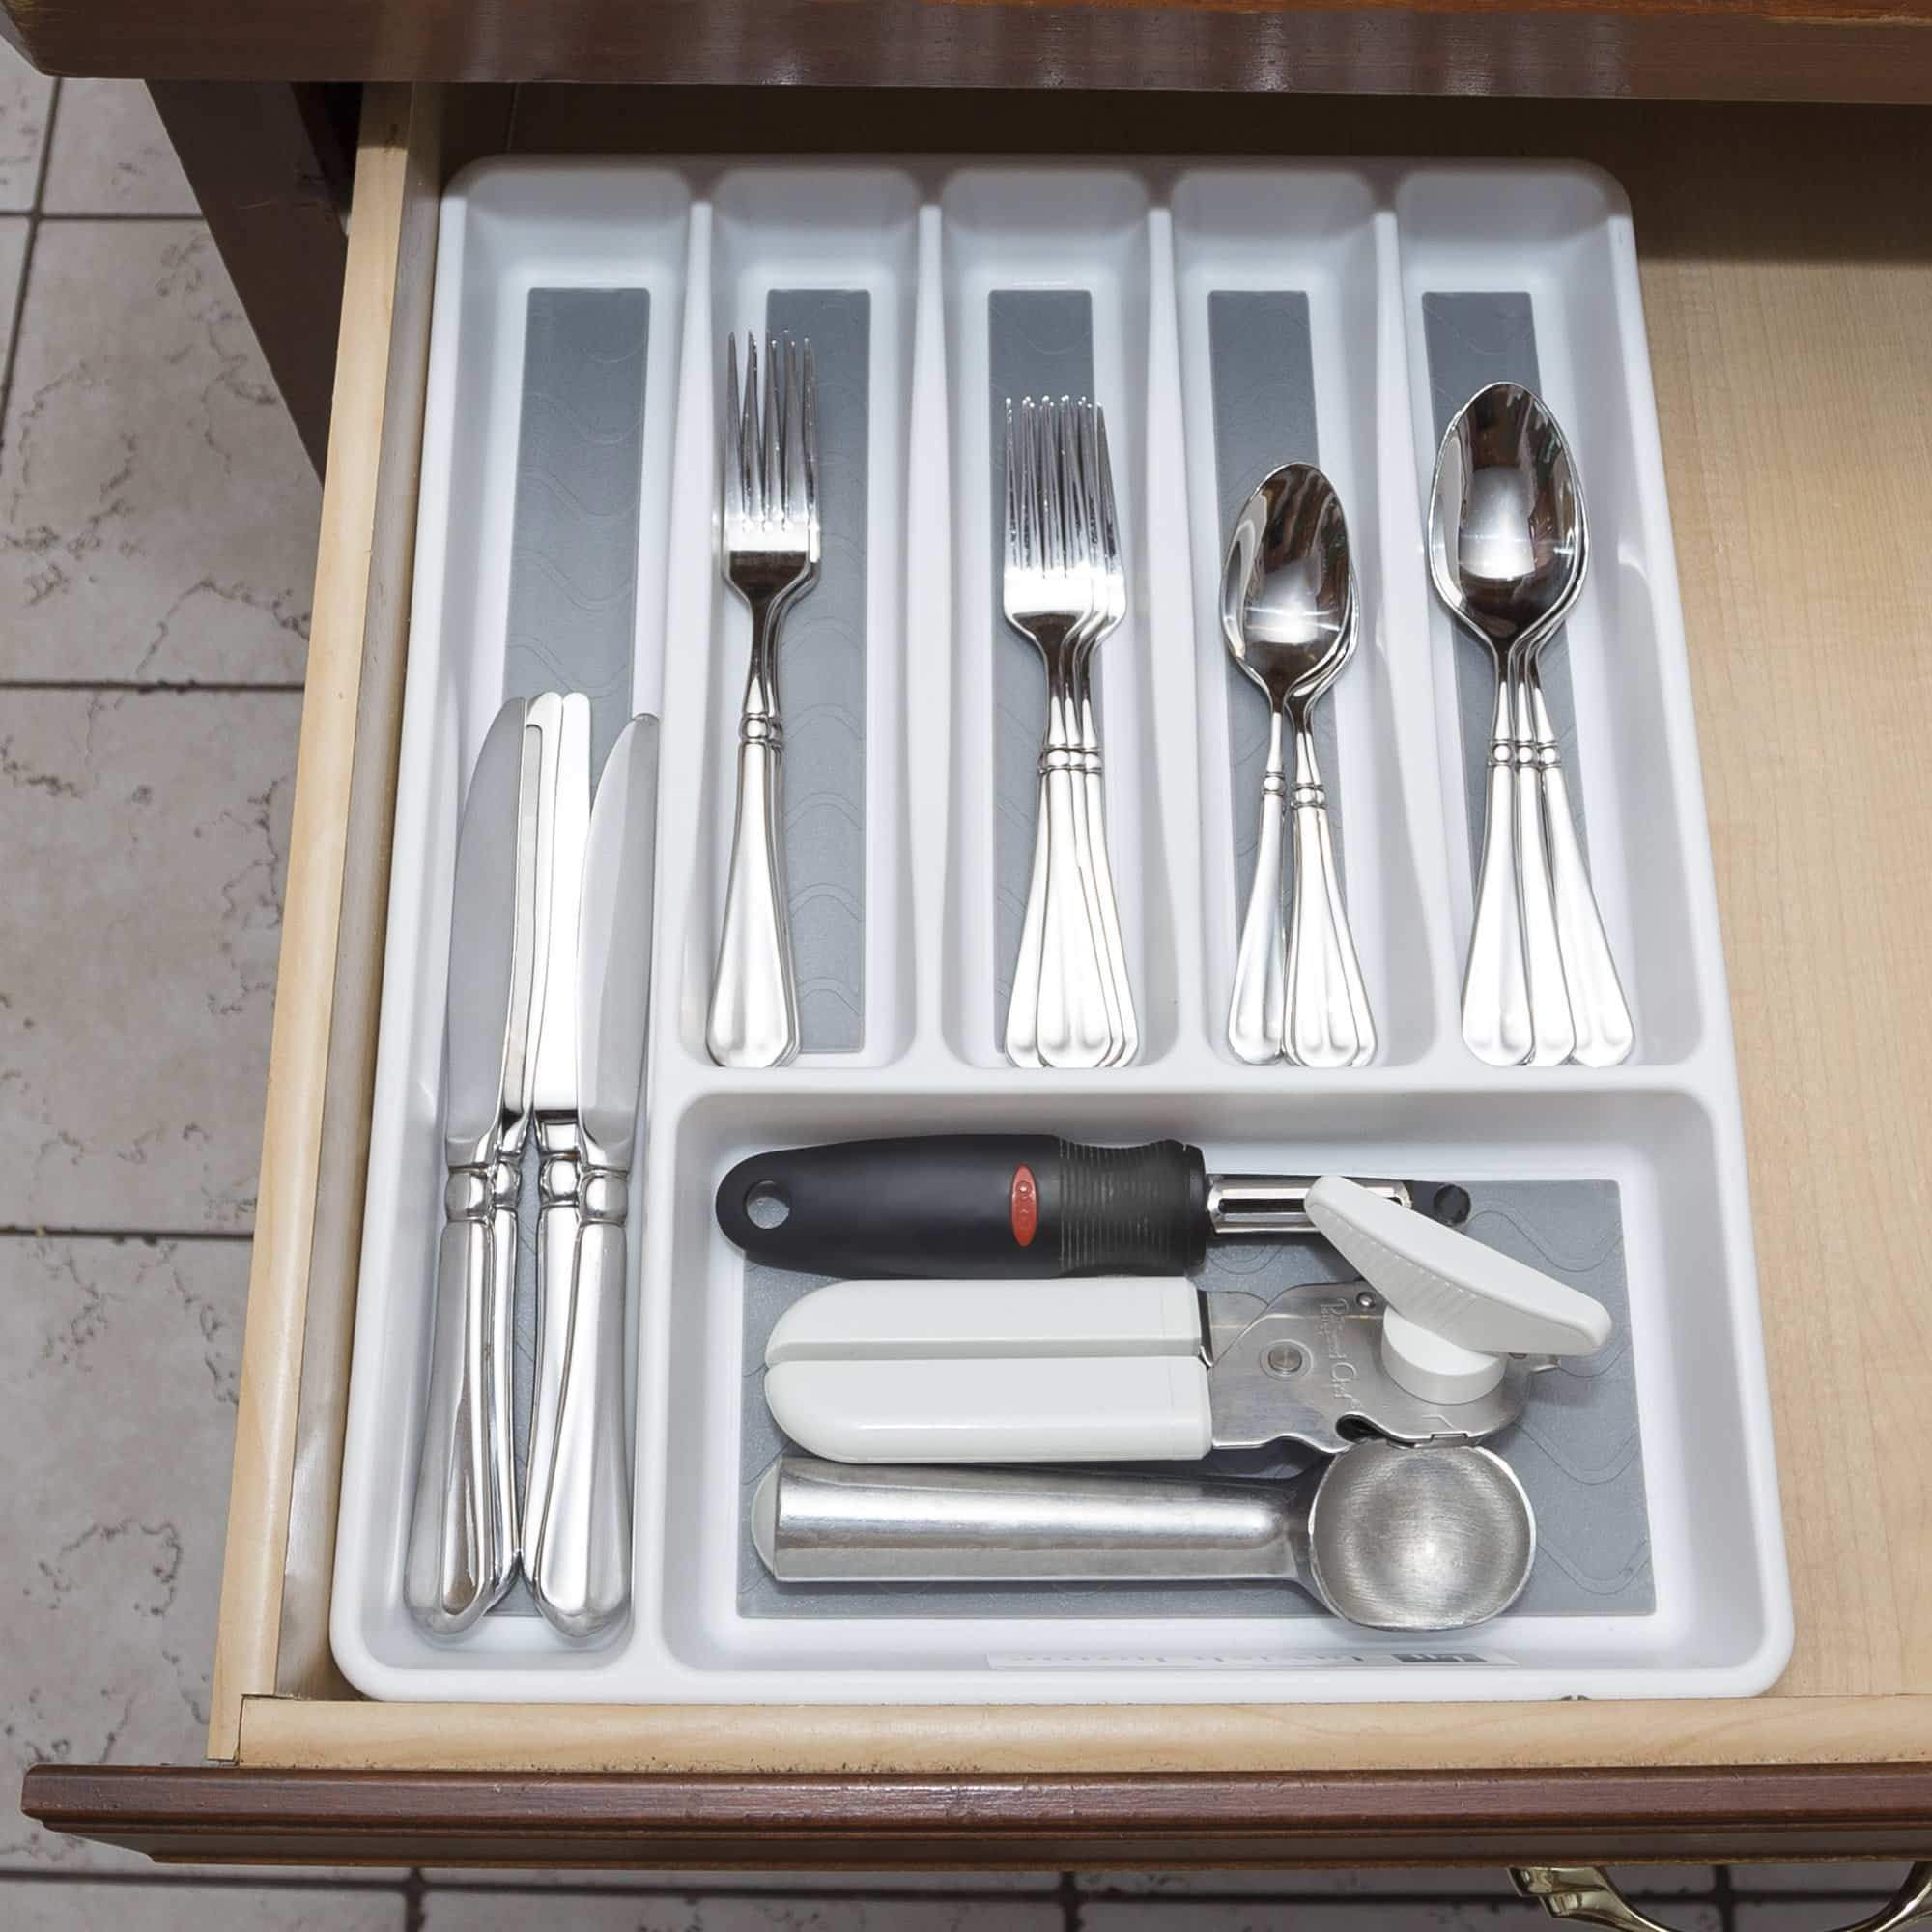 Best seller  silverware drawer organizer with six sections and nonslip tray flatware utensil cutlery kitchen divider by lavish home also for desk and office